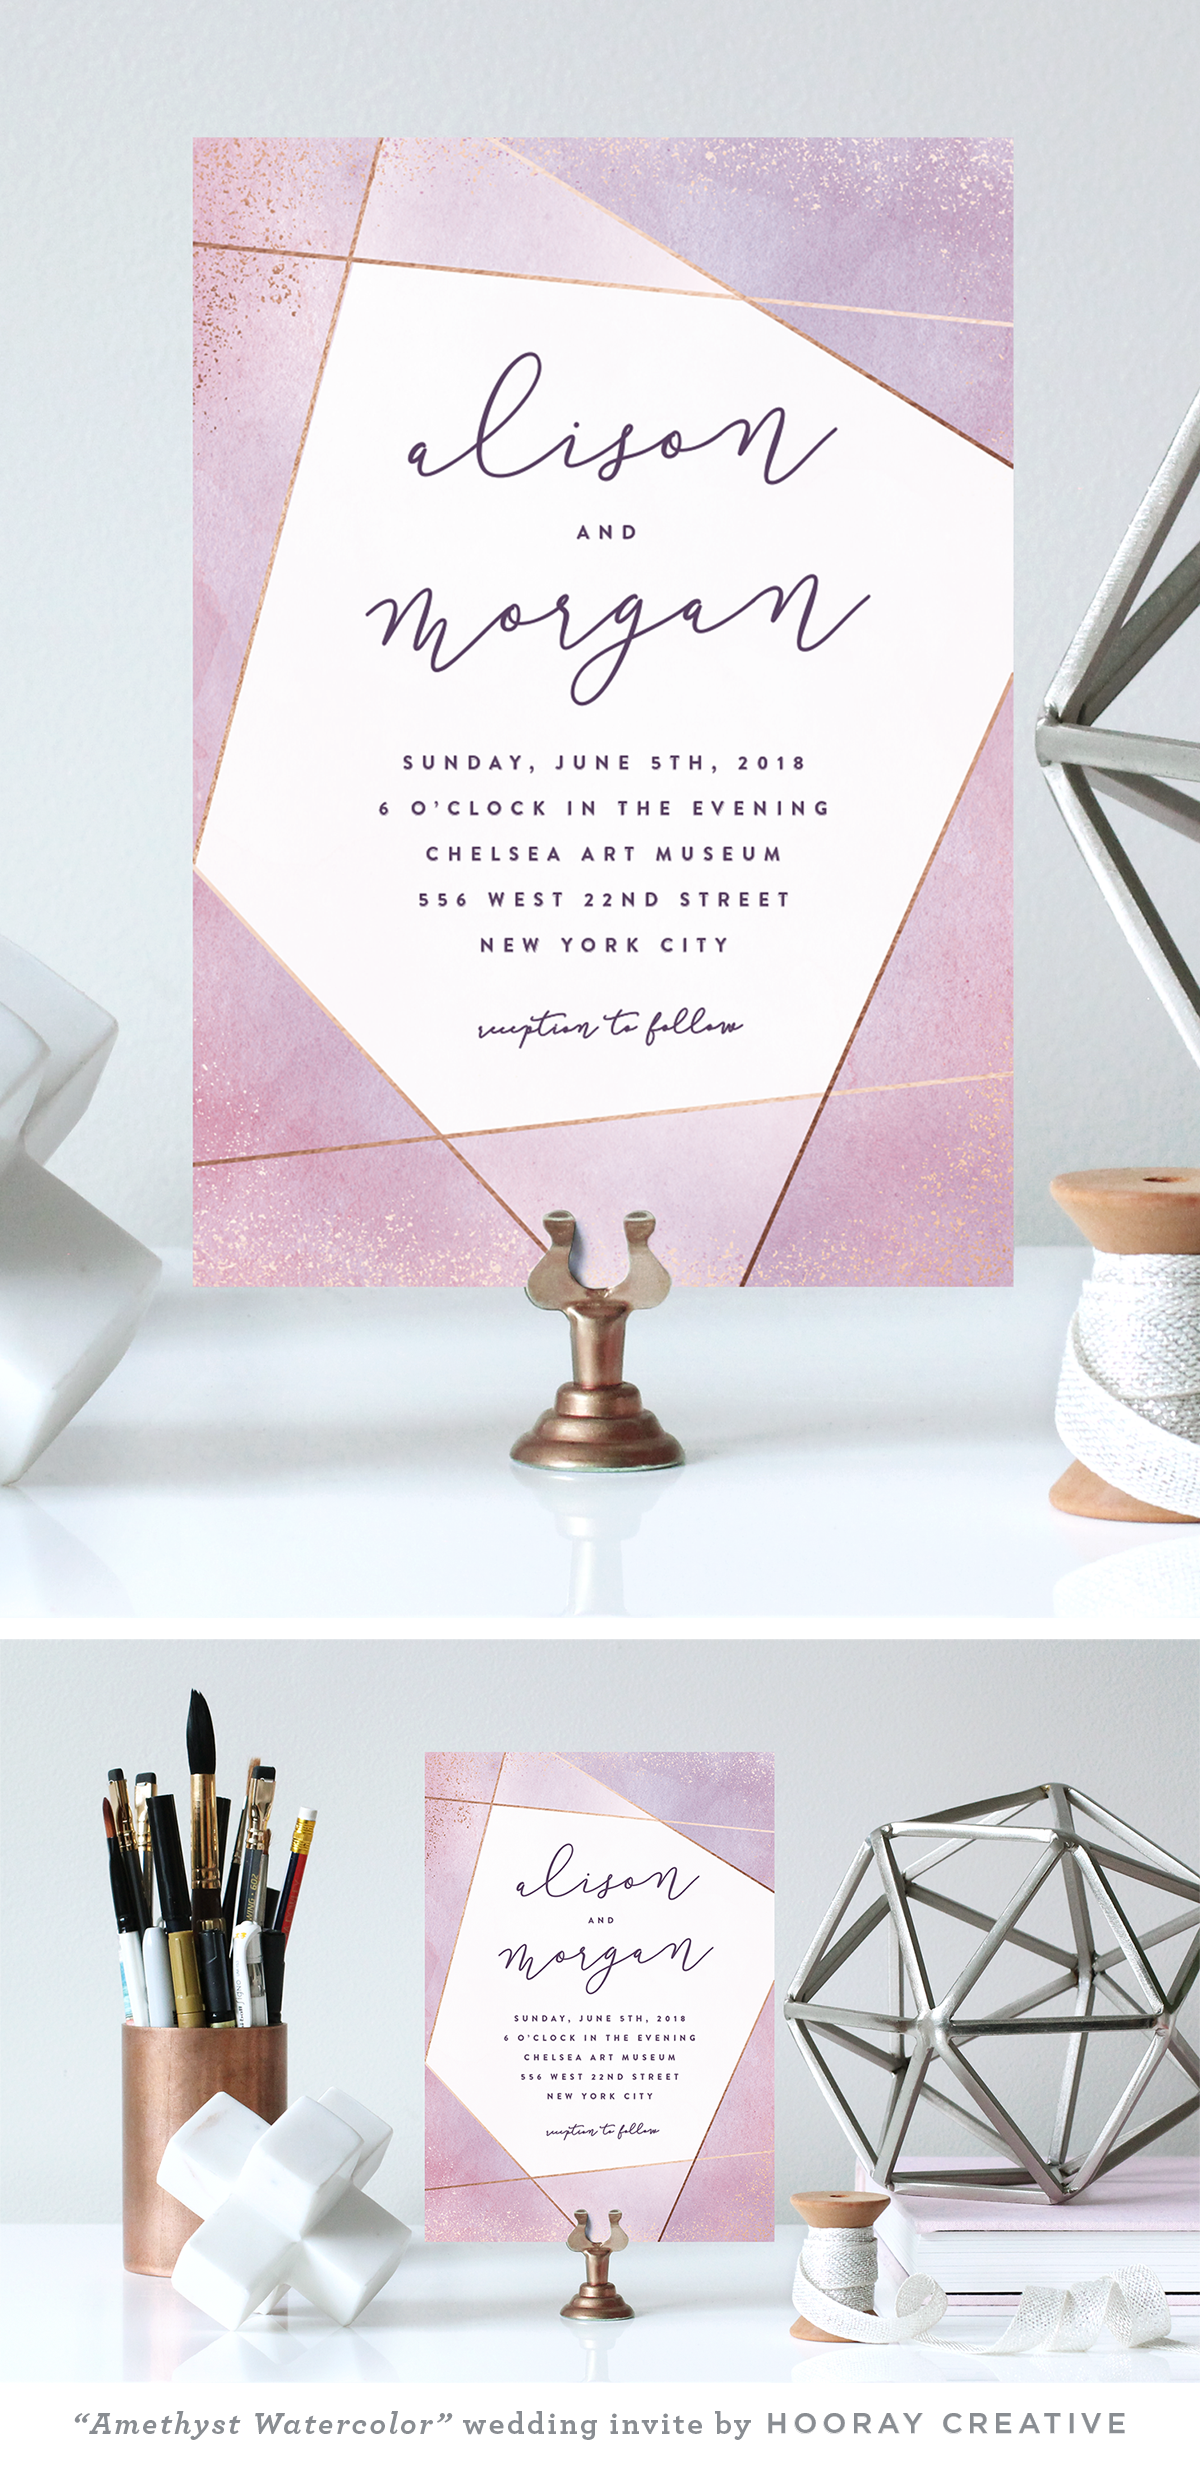 Amethyst Watercolor | { wedding creatives } | Pinterest | Geometric ...